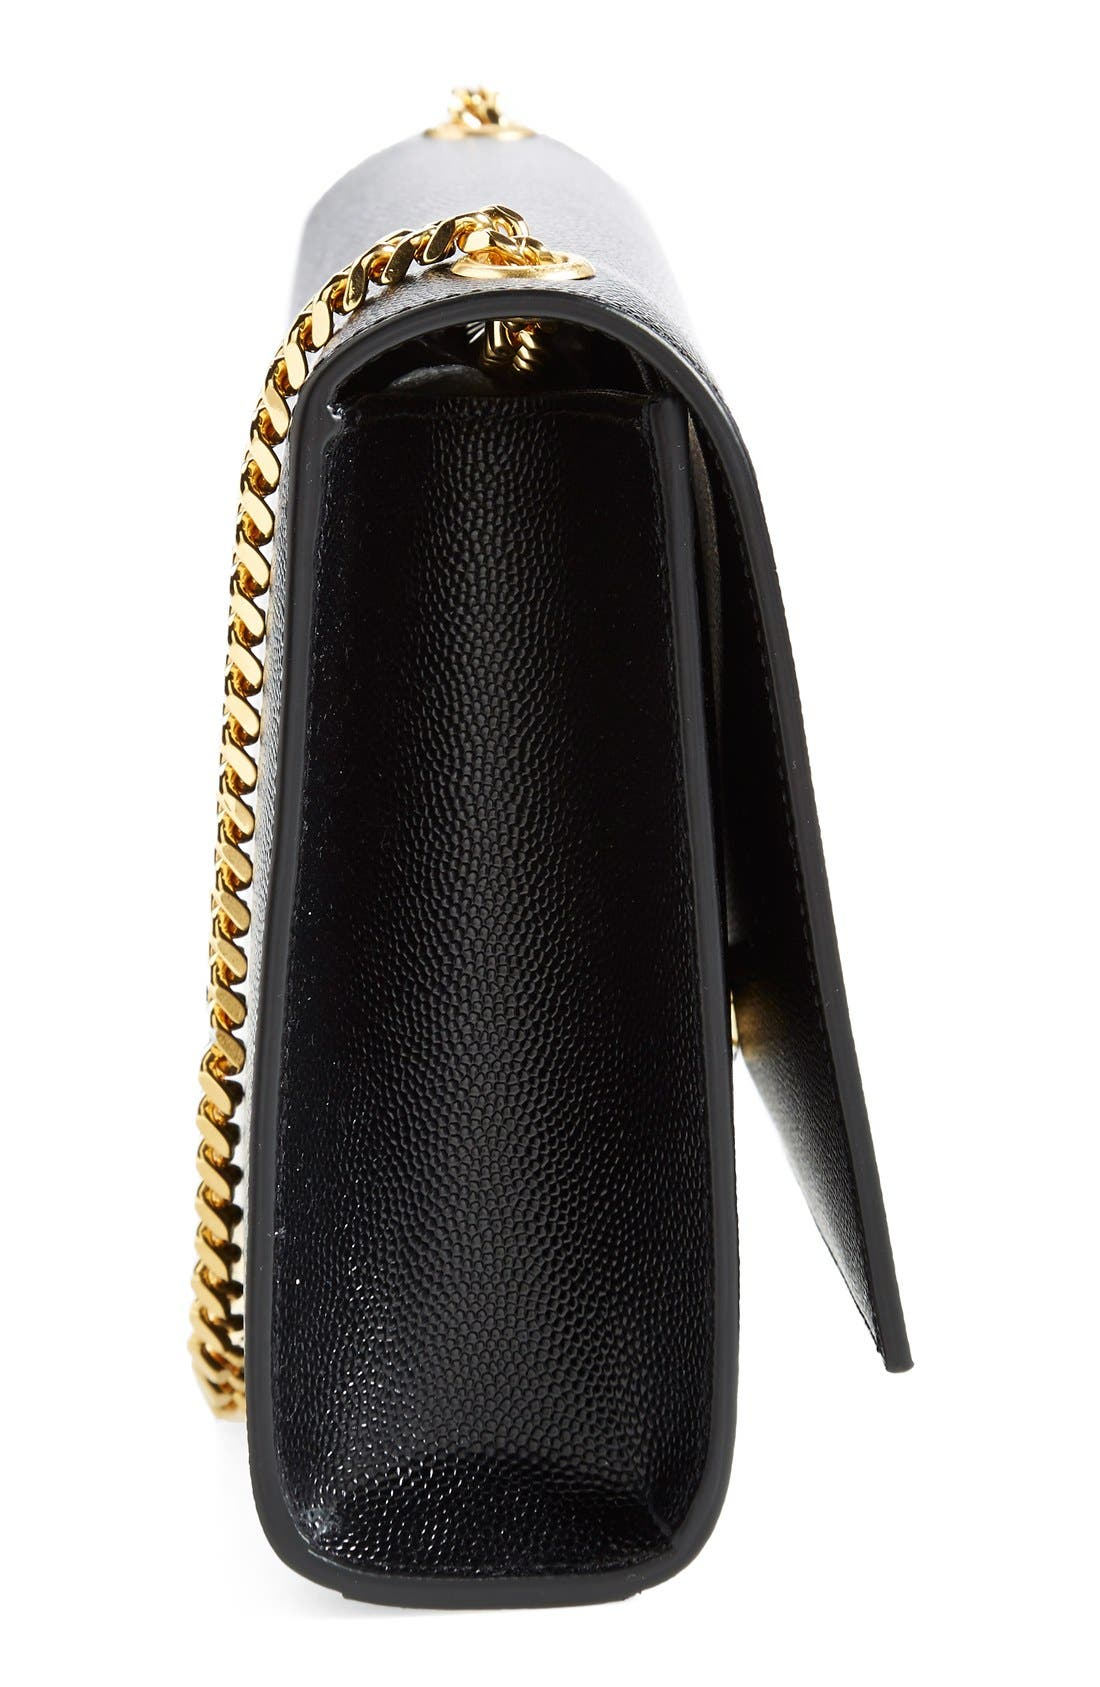 'Medium Kate' Leather Chain Shoulder Bag,                             Alternate thumbnail 5, color,                             Noir